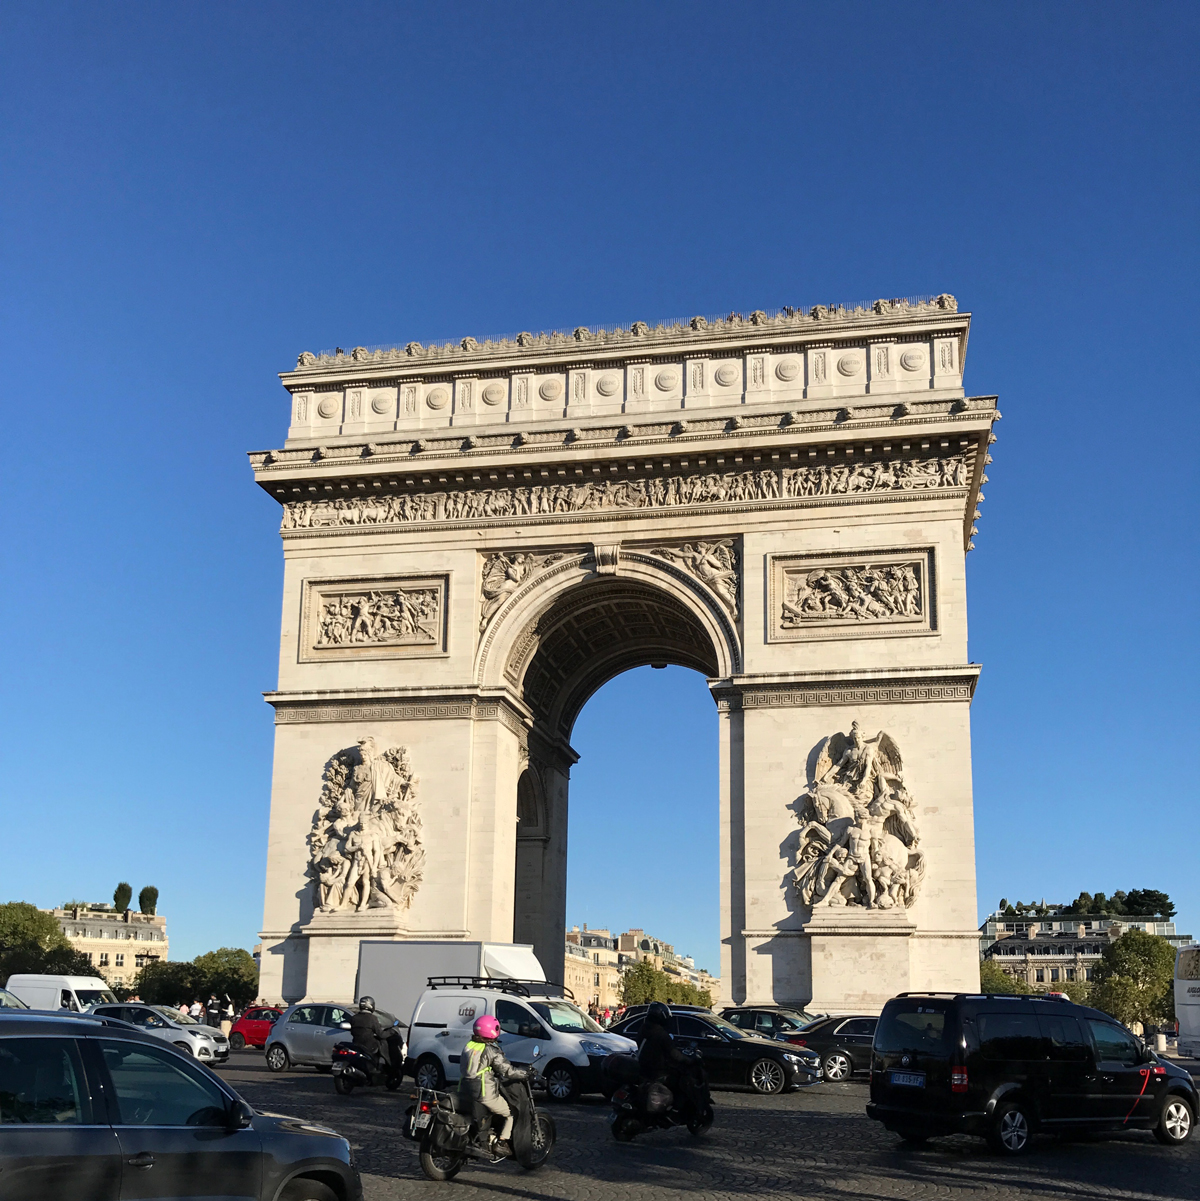 The lighting was ideal when we came upon the Arc de Triomphe. It took us a little bit to find the tunnel to it but once we did it was splendid.